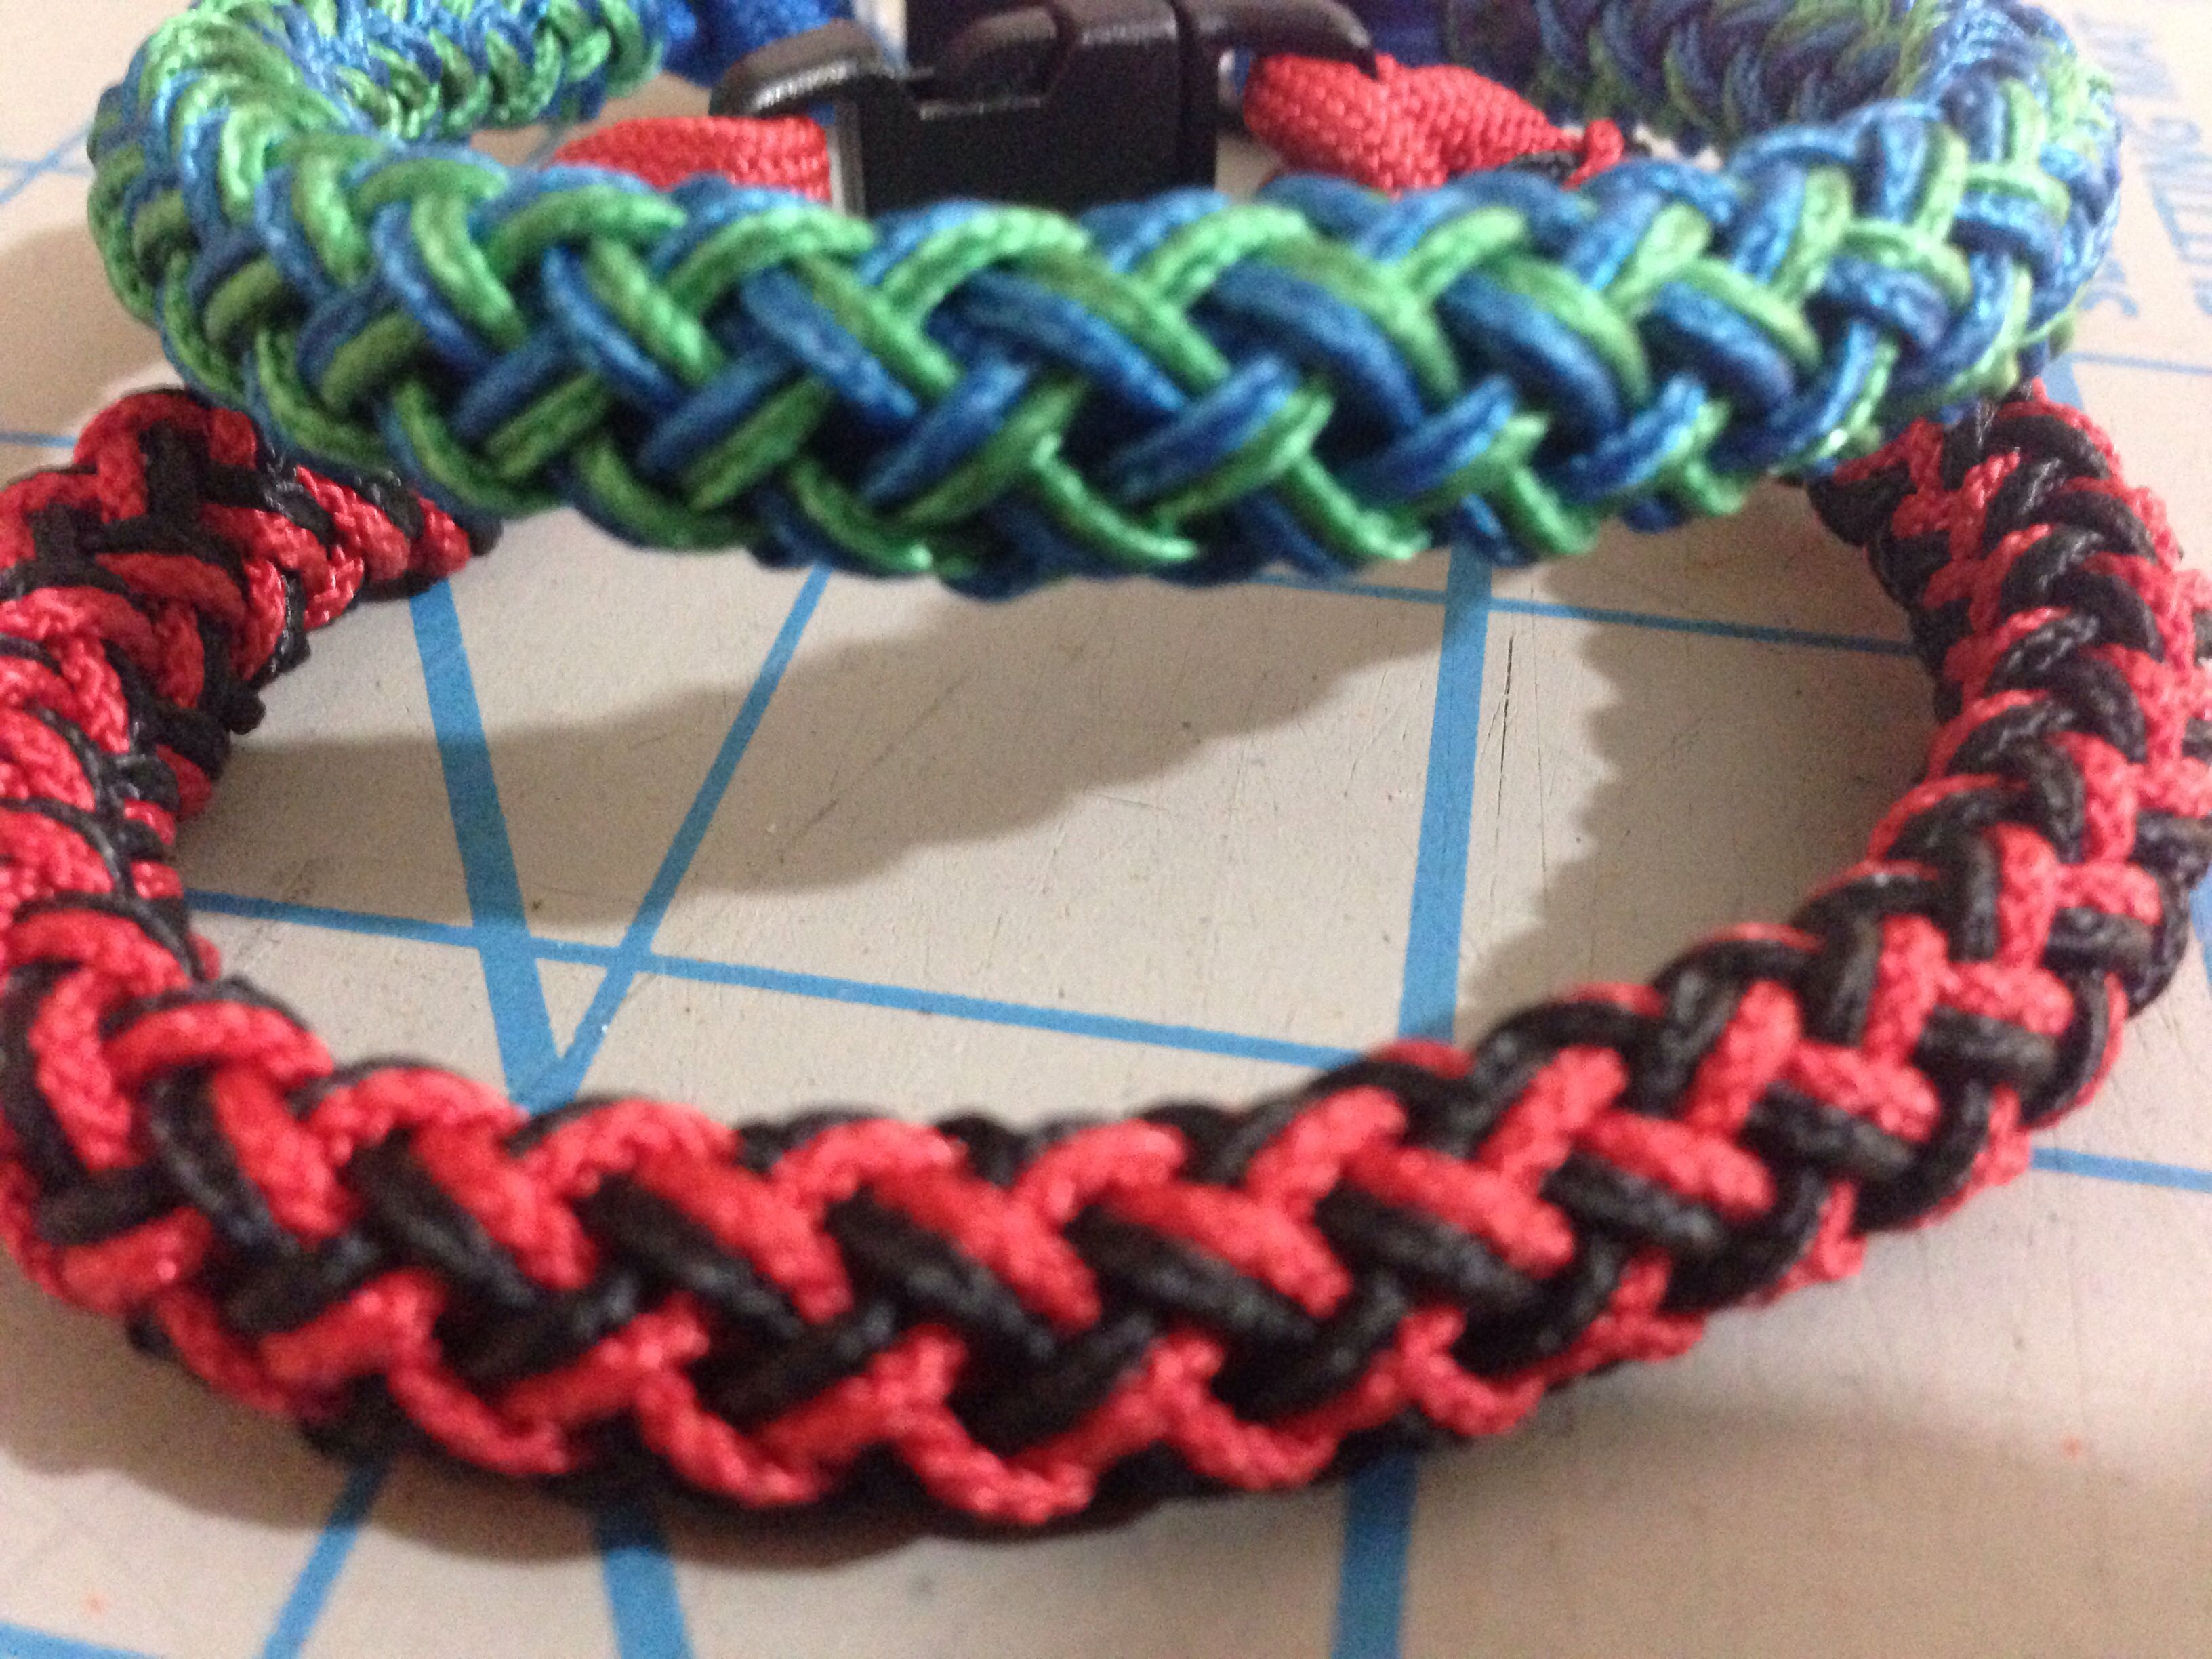 are microcord colored bracelet braided colors purple multi and square the knot a green pin